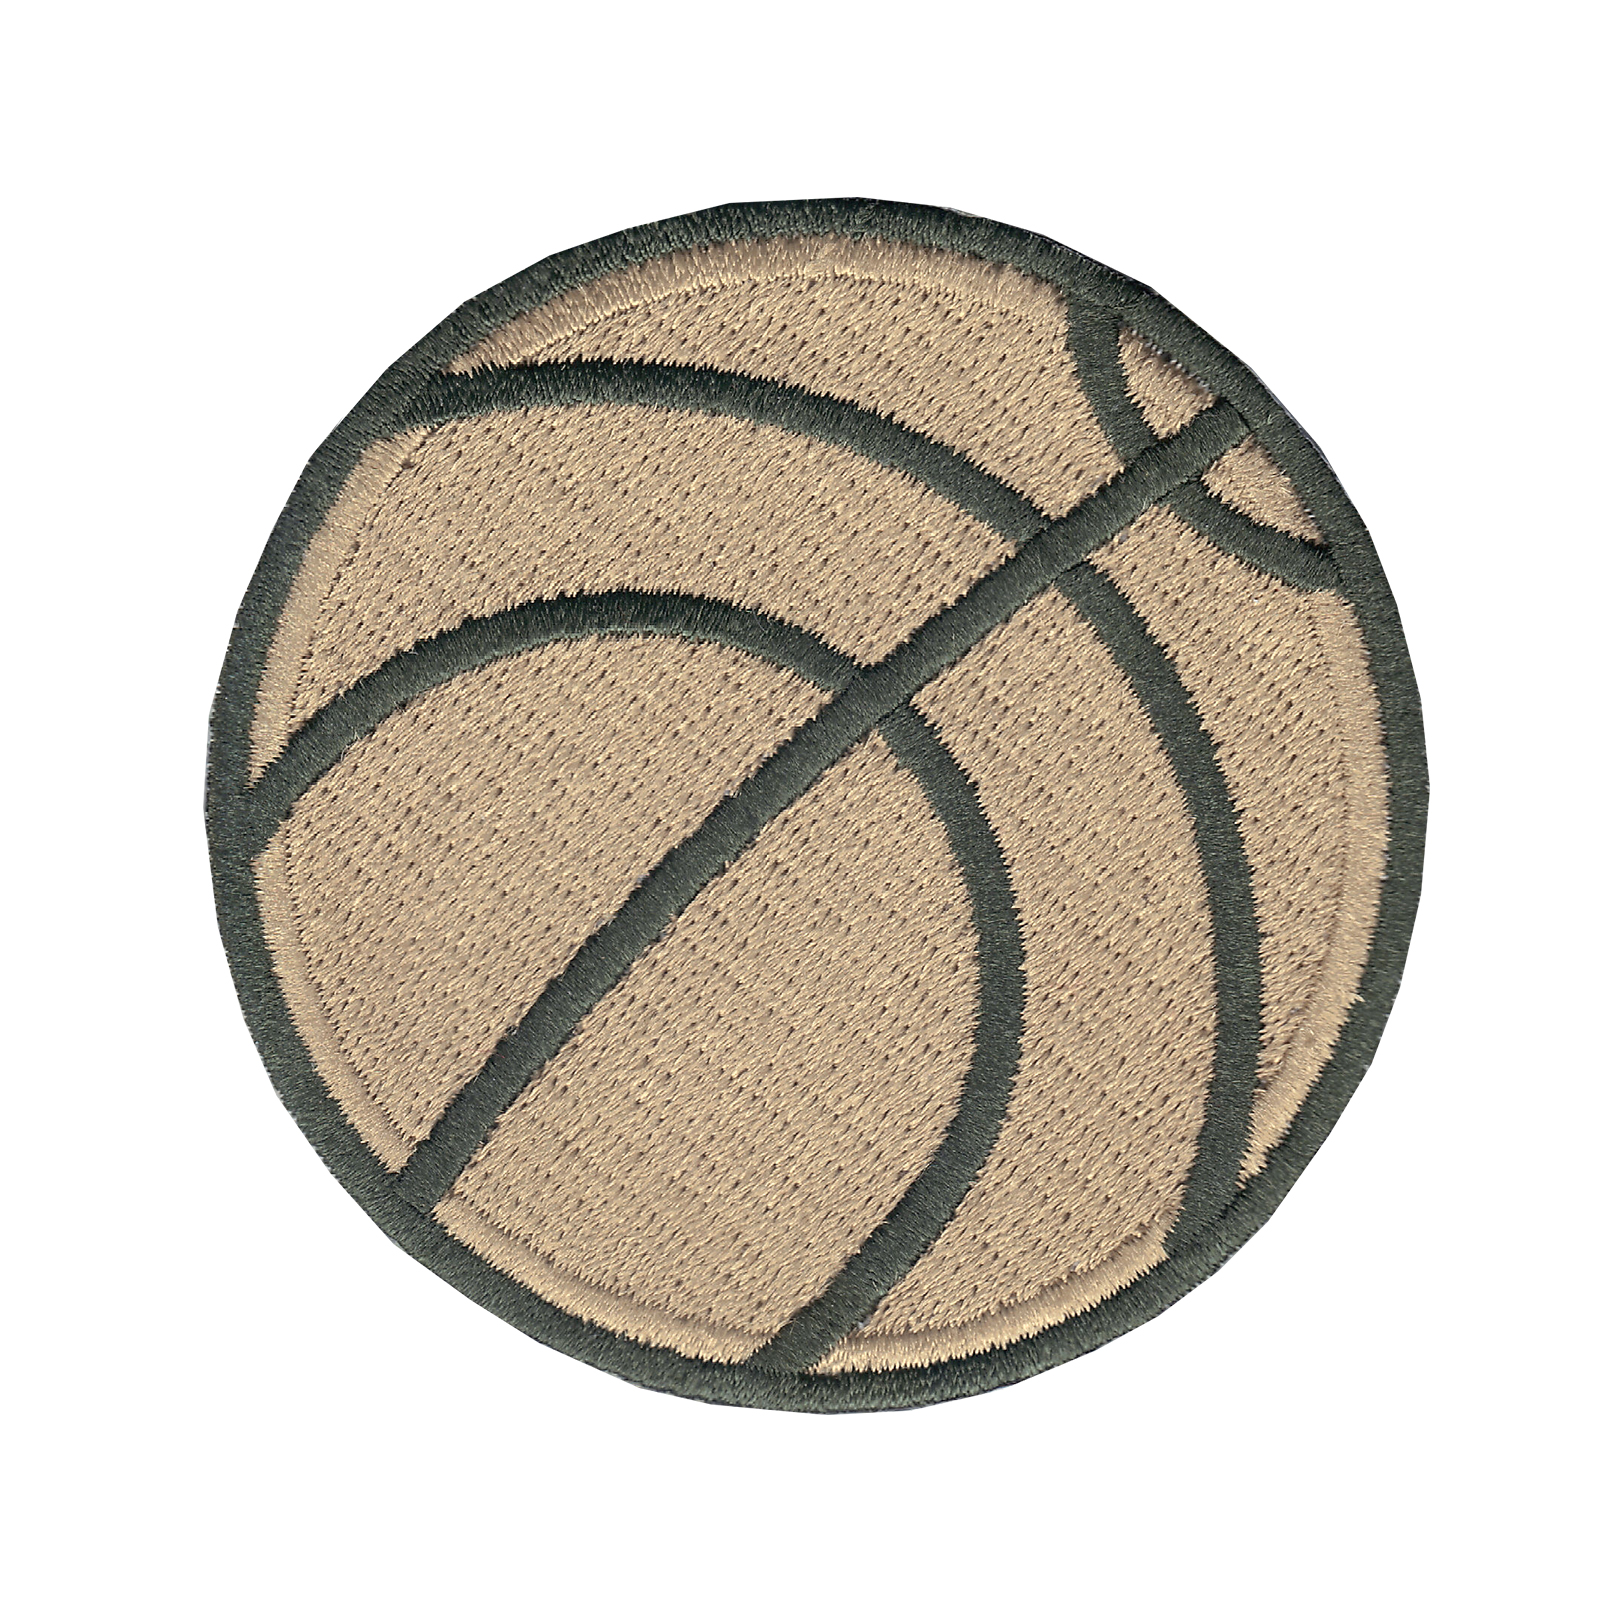 Basketball Iron On Applique Patch